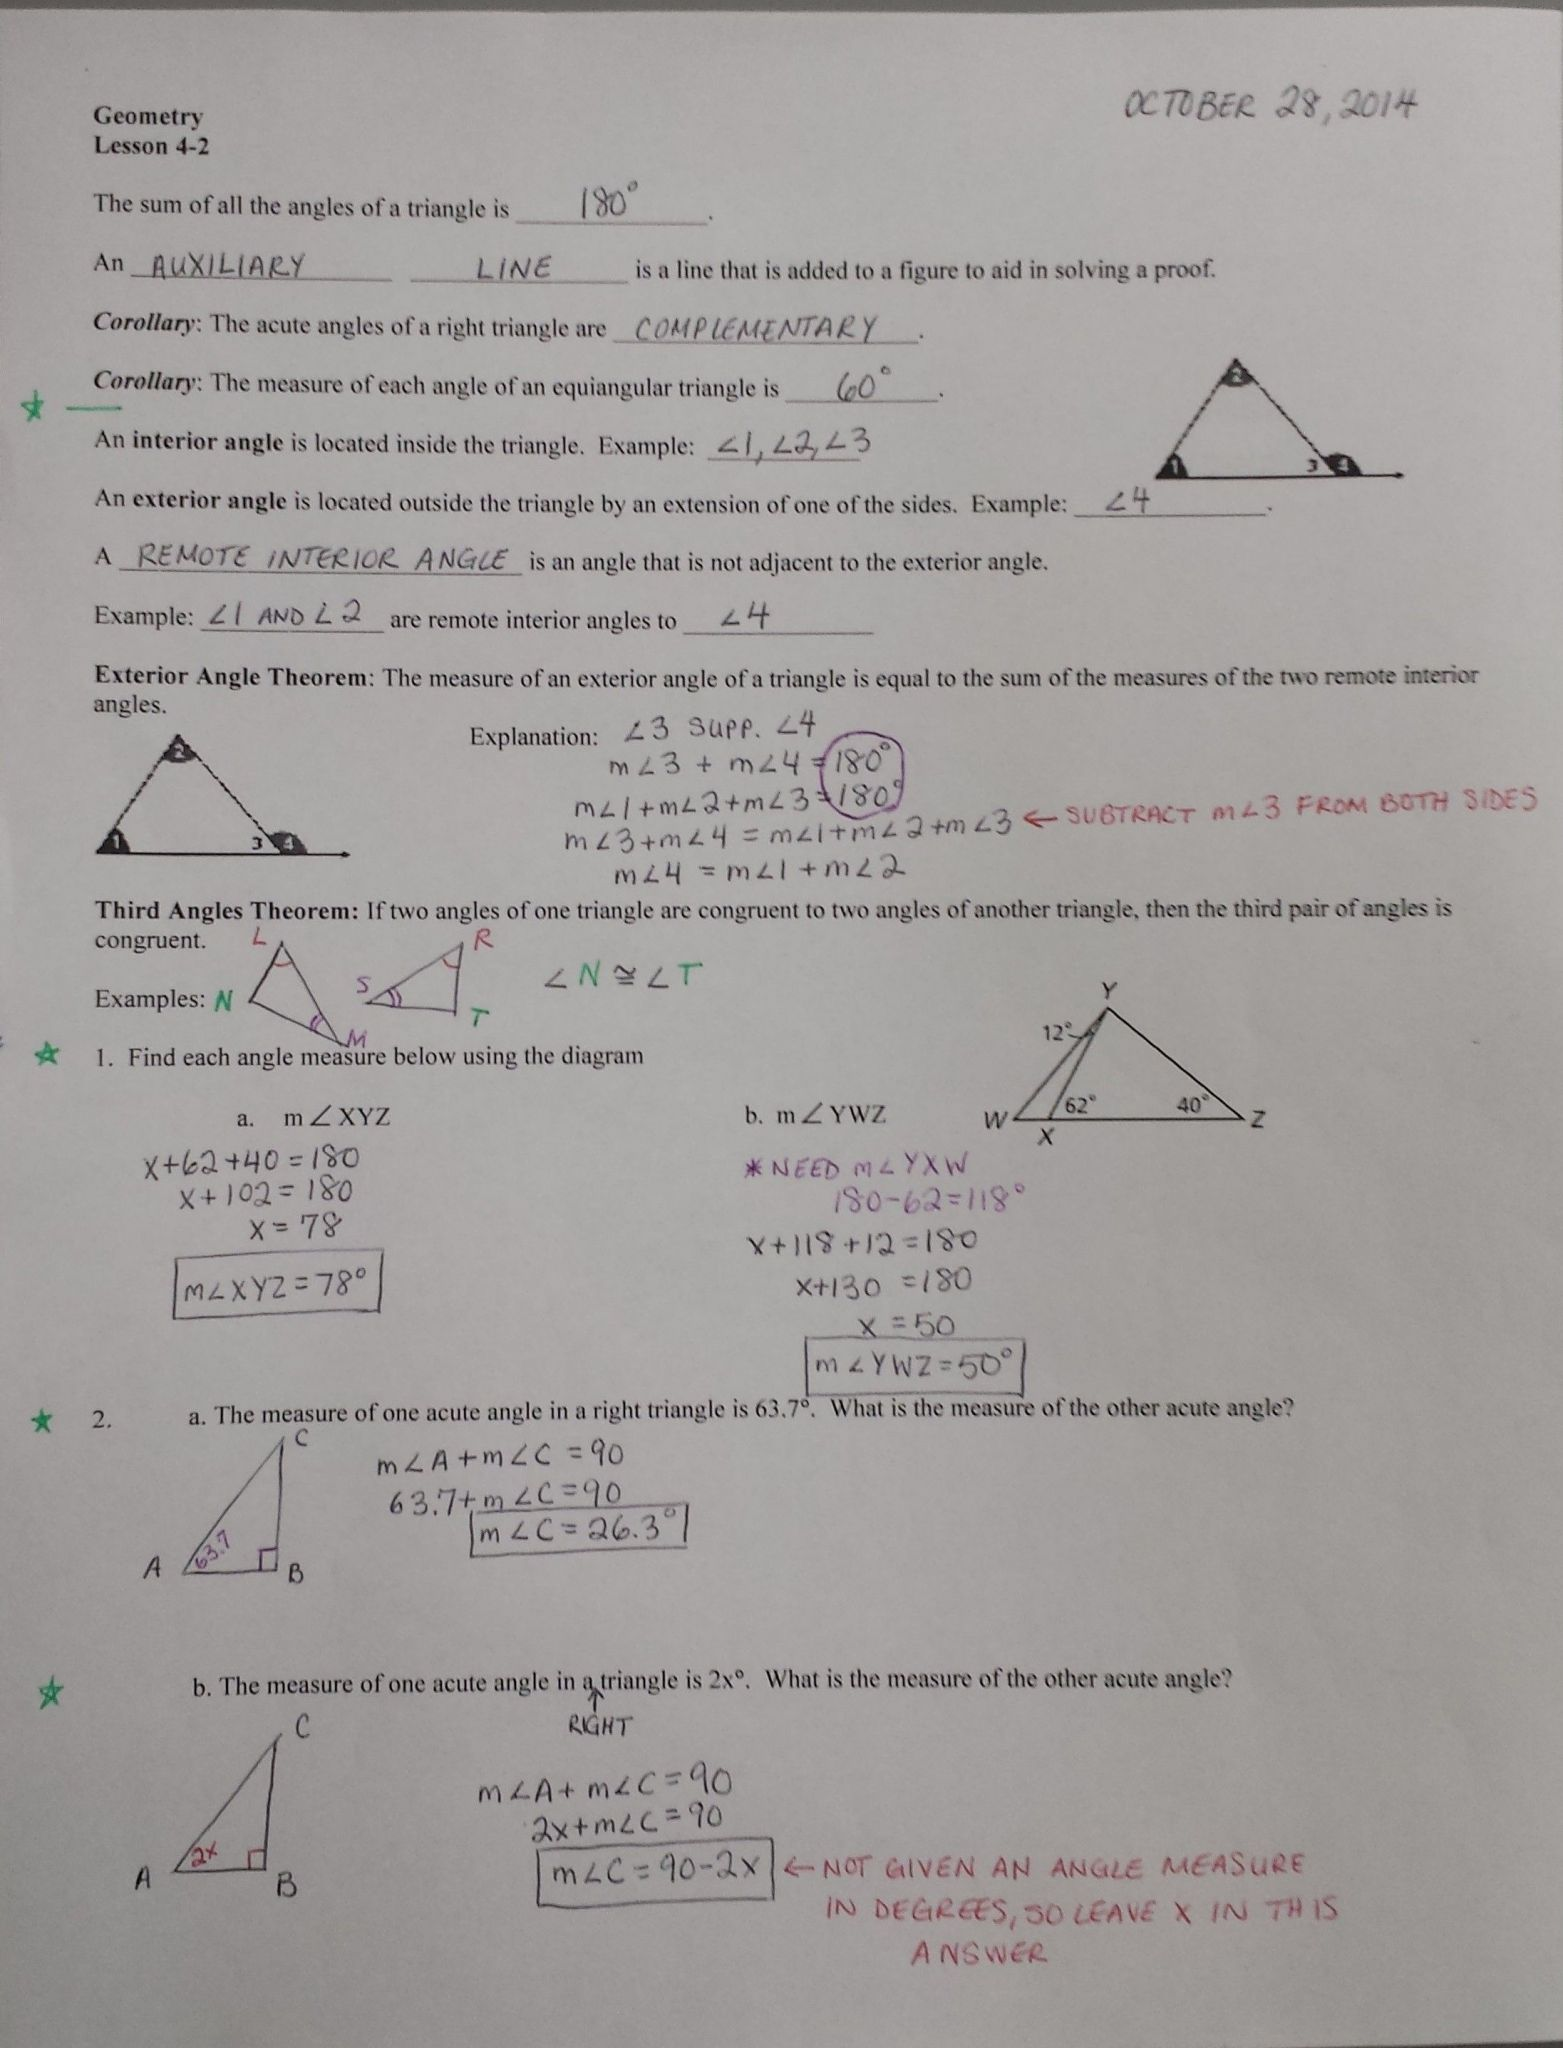 Books Never Written Geometry Worksheet Answers